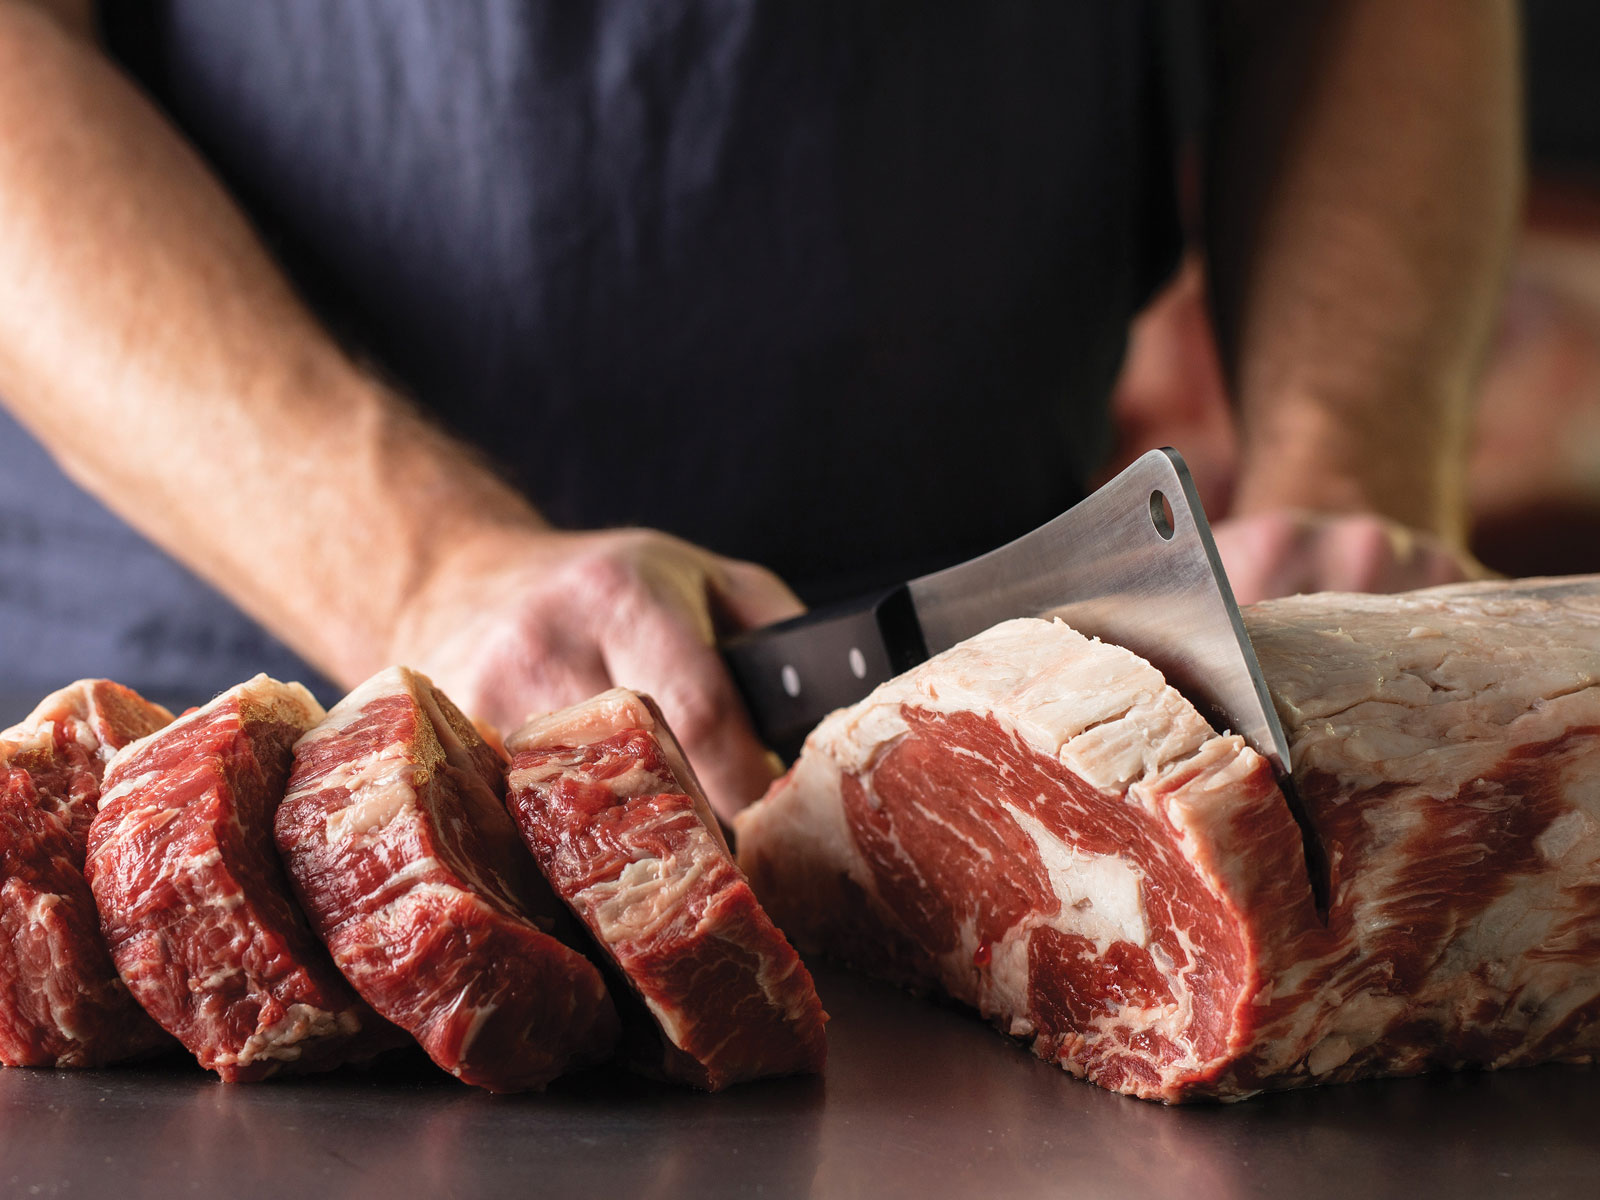 New Personal Butcher Service Is Like eHarmony for Meat